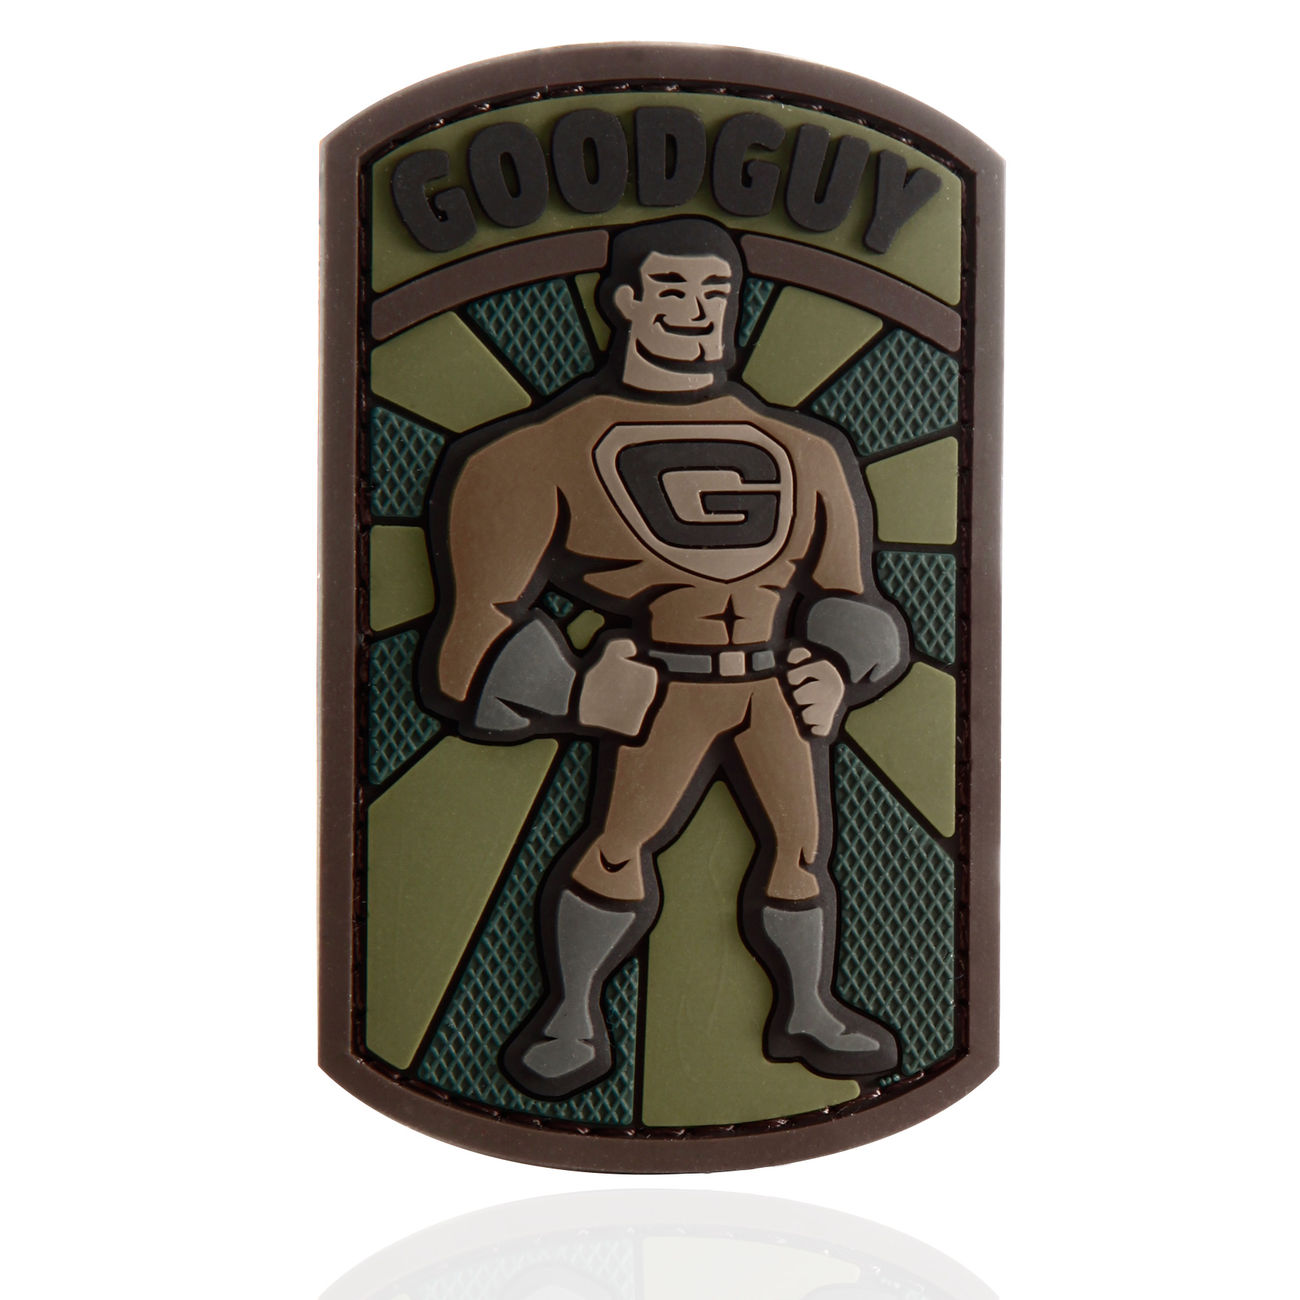 Mil-Spec Monkey 3D Rubber Patch Good Guy forest